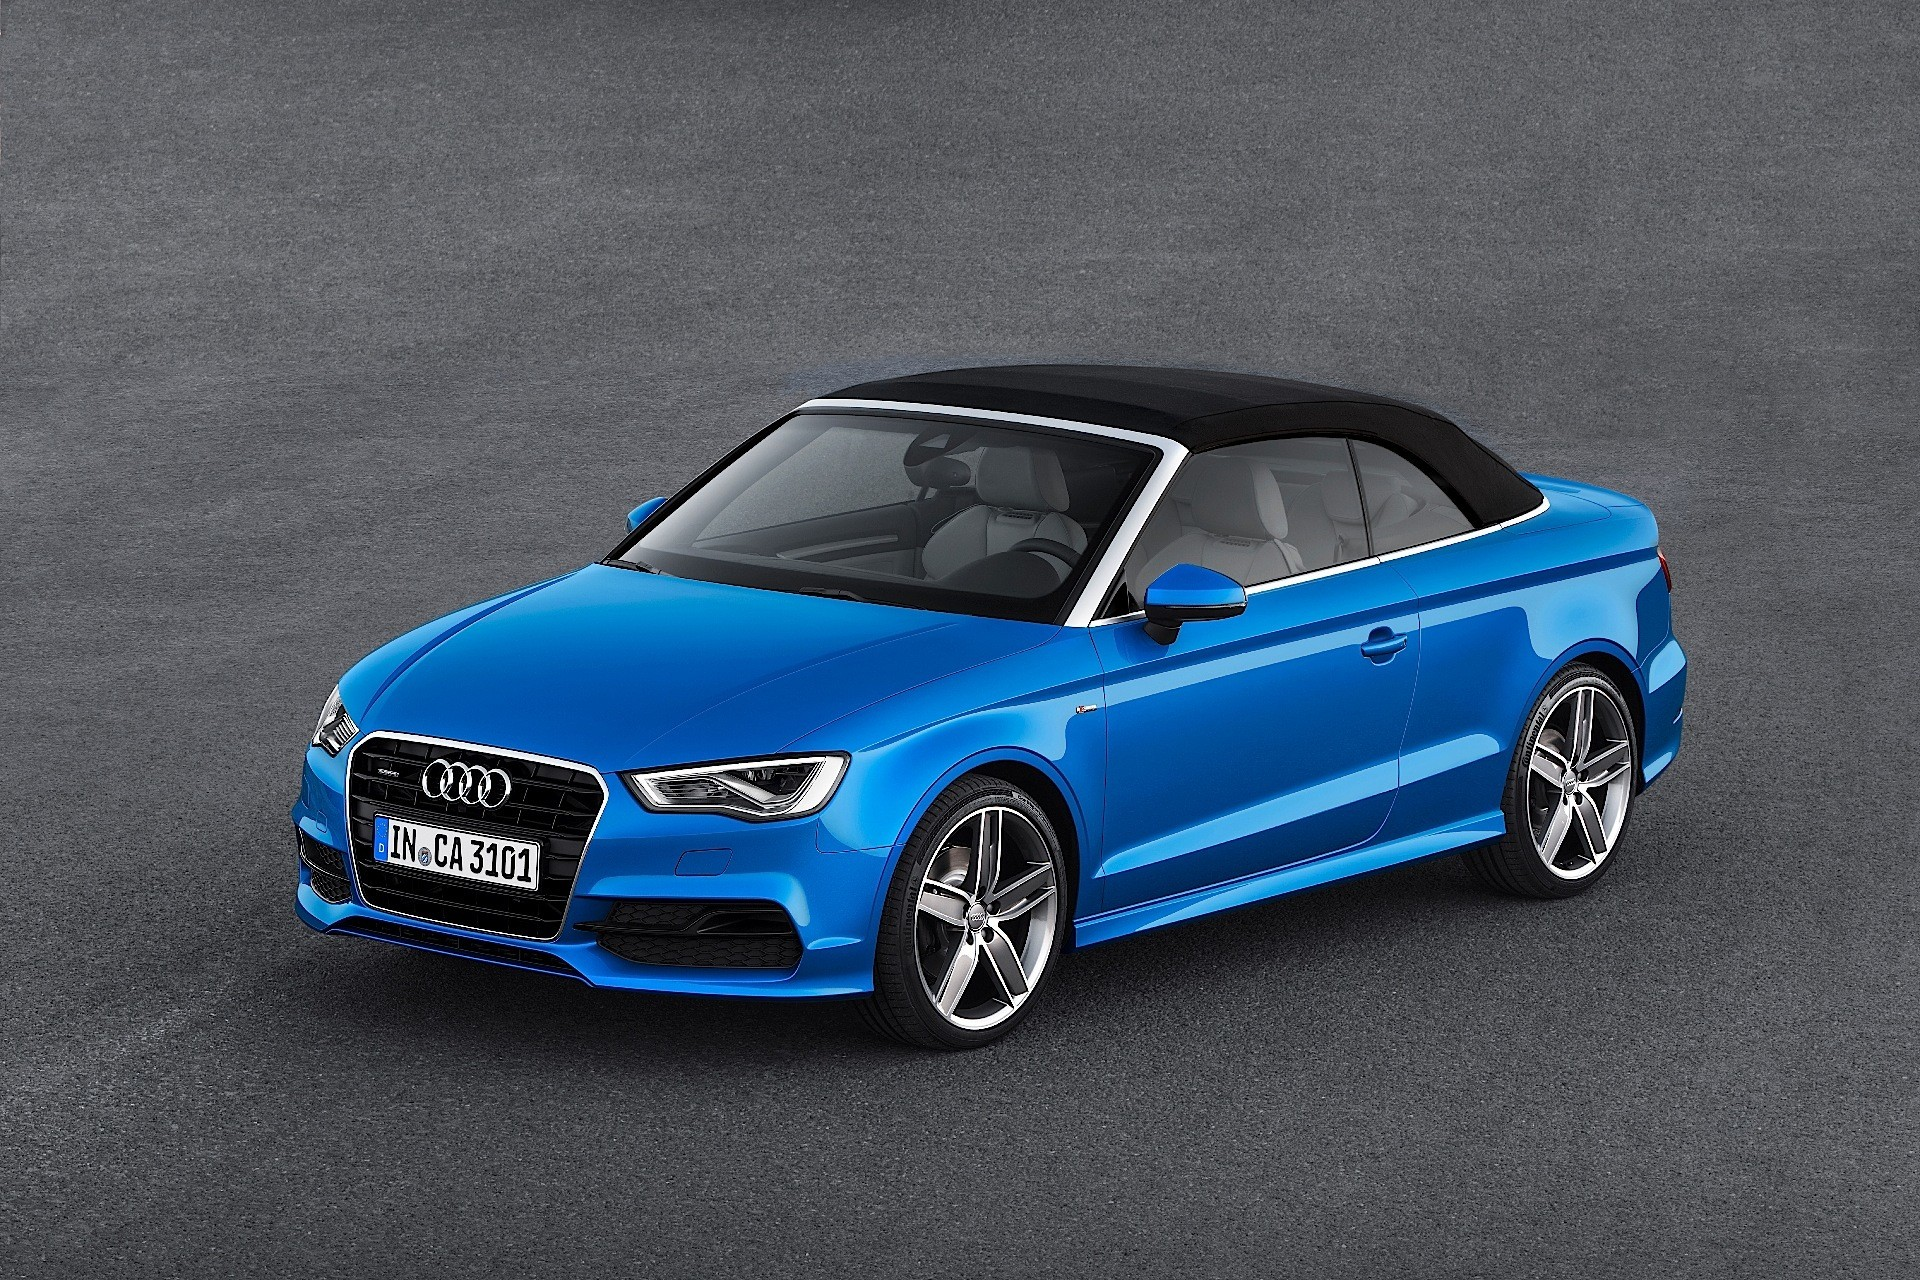 audi to axe 3 door versions of a1 a3 and slow selling a3 cabriolet autoevolution. Black Bedroom Furniture Sets. Home Design Ideas